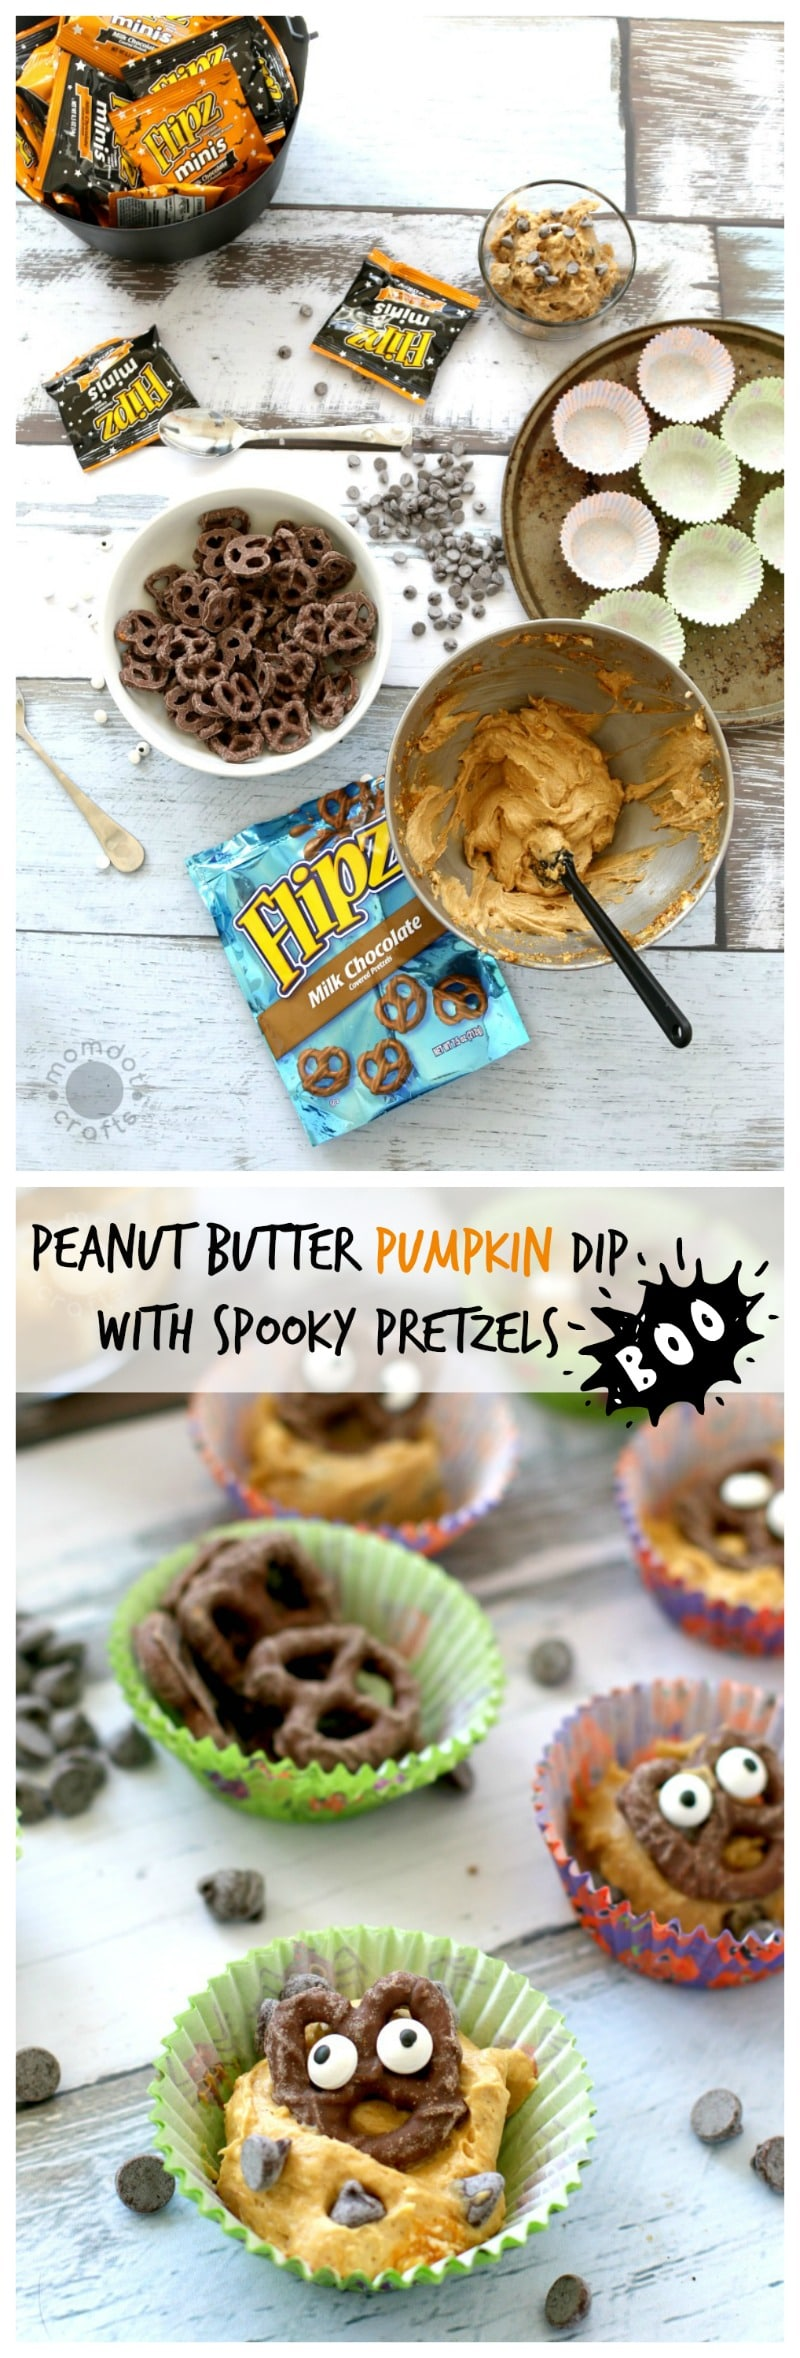 Cookie Dough Dip + Peanut Butter Pumpkin Dip- Two recipes that are delightful with pretzels and fun to serve at parties in individual servings, grab the dip recipes here